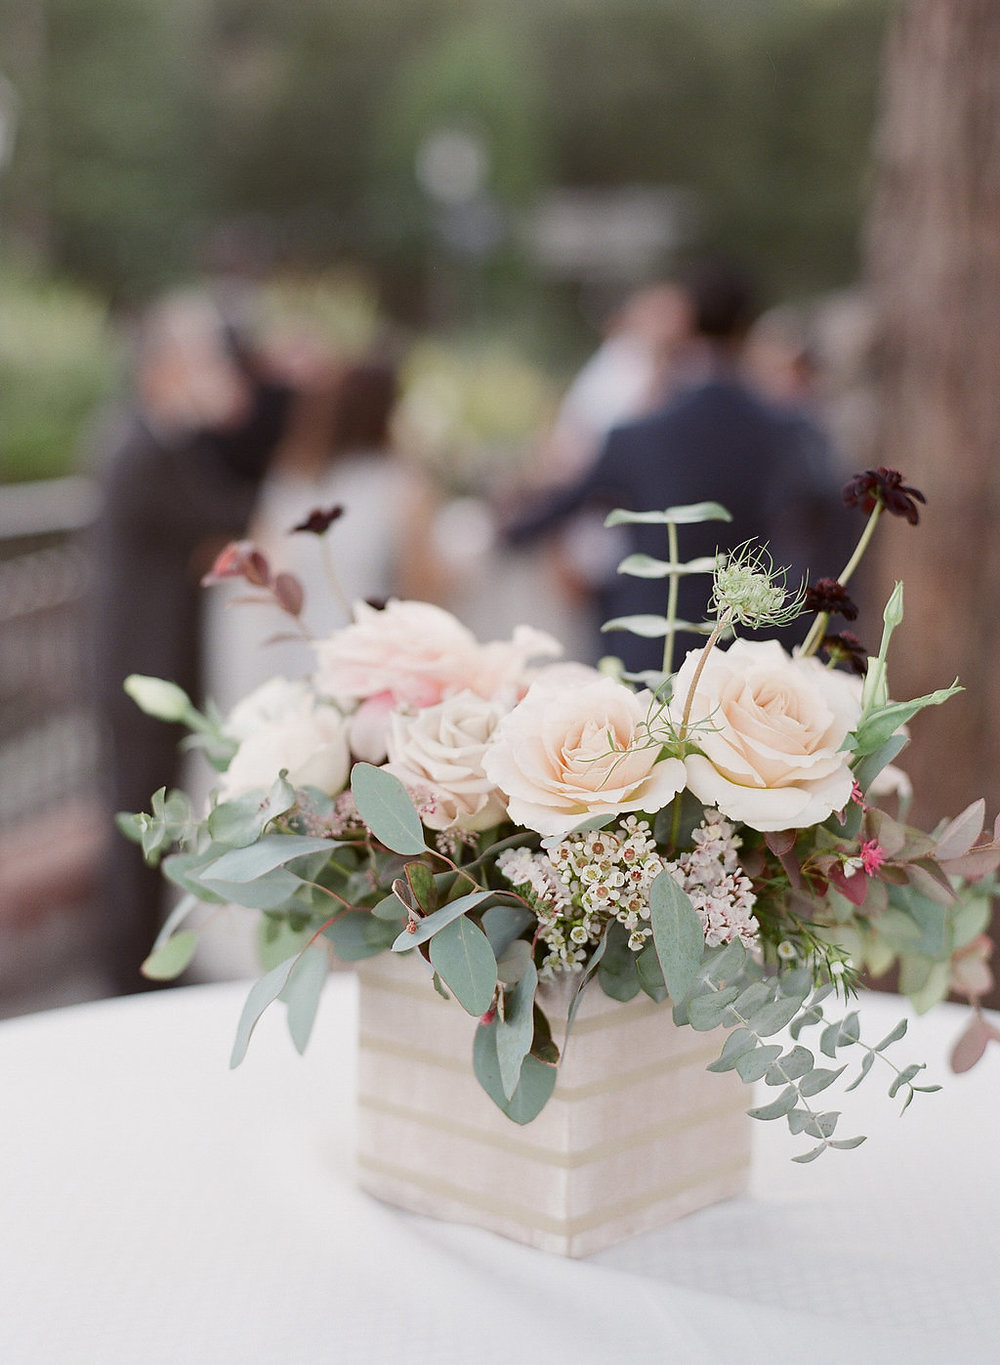 cocktail-flowers-mountain-winery-wedding-JennySoiPhotography.jpg